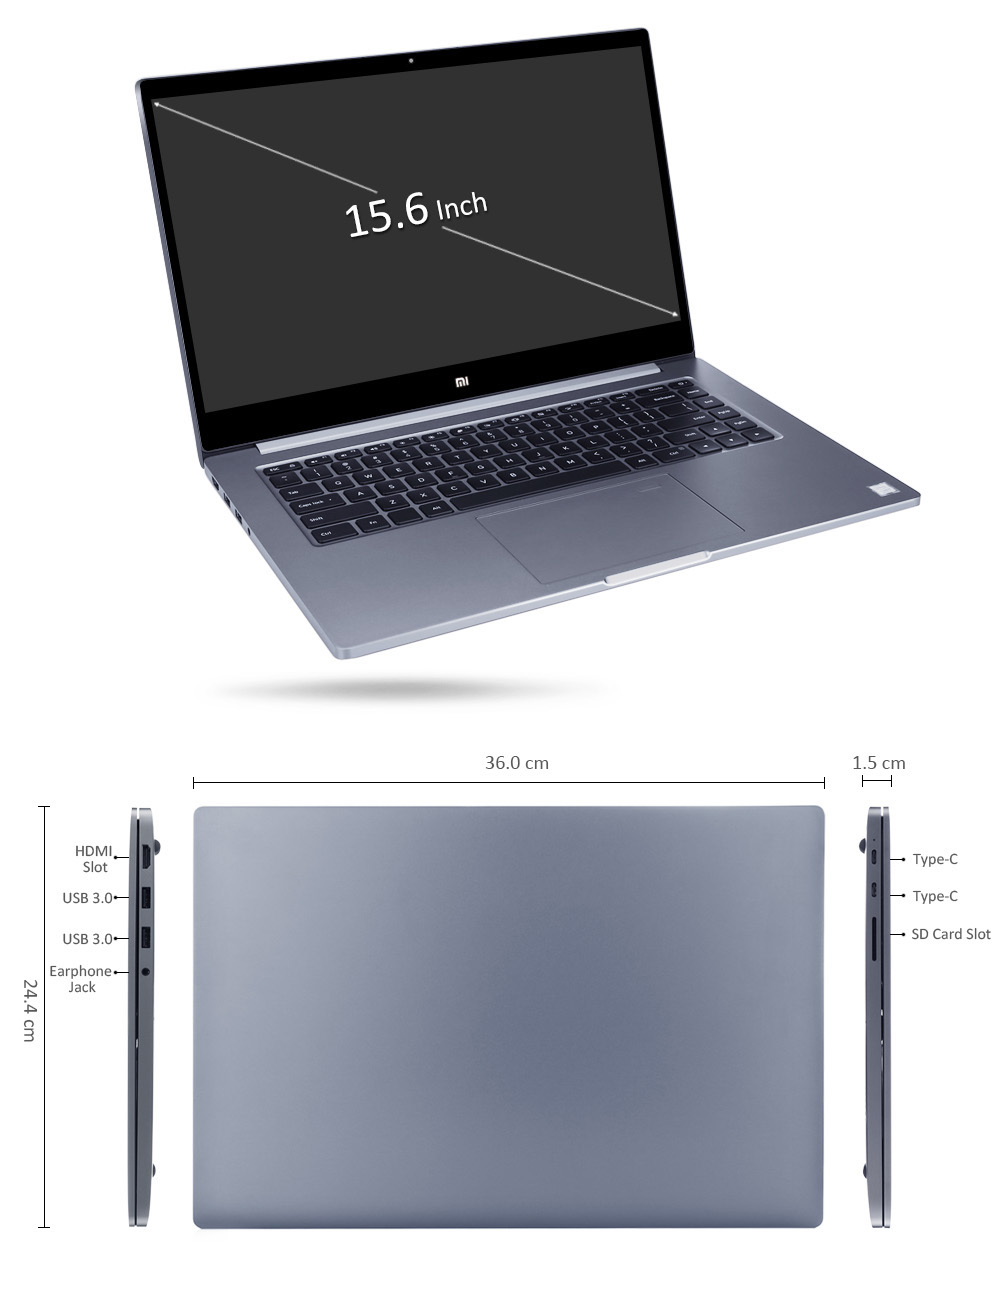 Xiaomi Mi Notebook Pro 15.6 inch Windows 10 Chinese Version Intel Core i7-8550U Quad Core 1.8GHz 16GB RAM 256GB SSD Dual WiFi HDMI